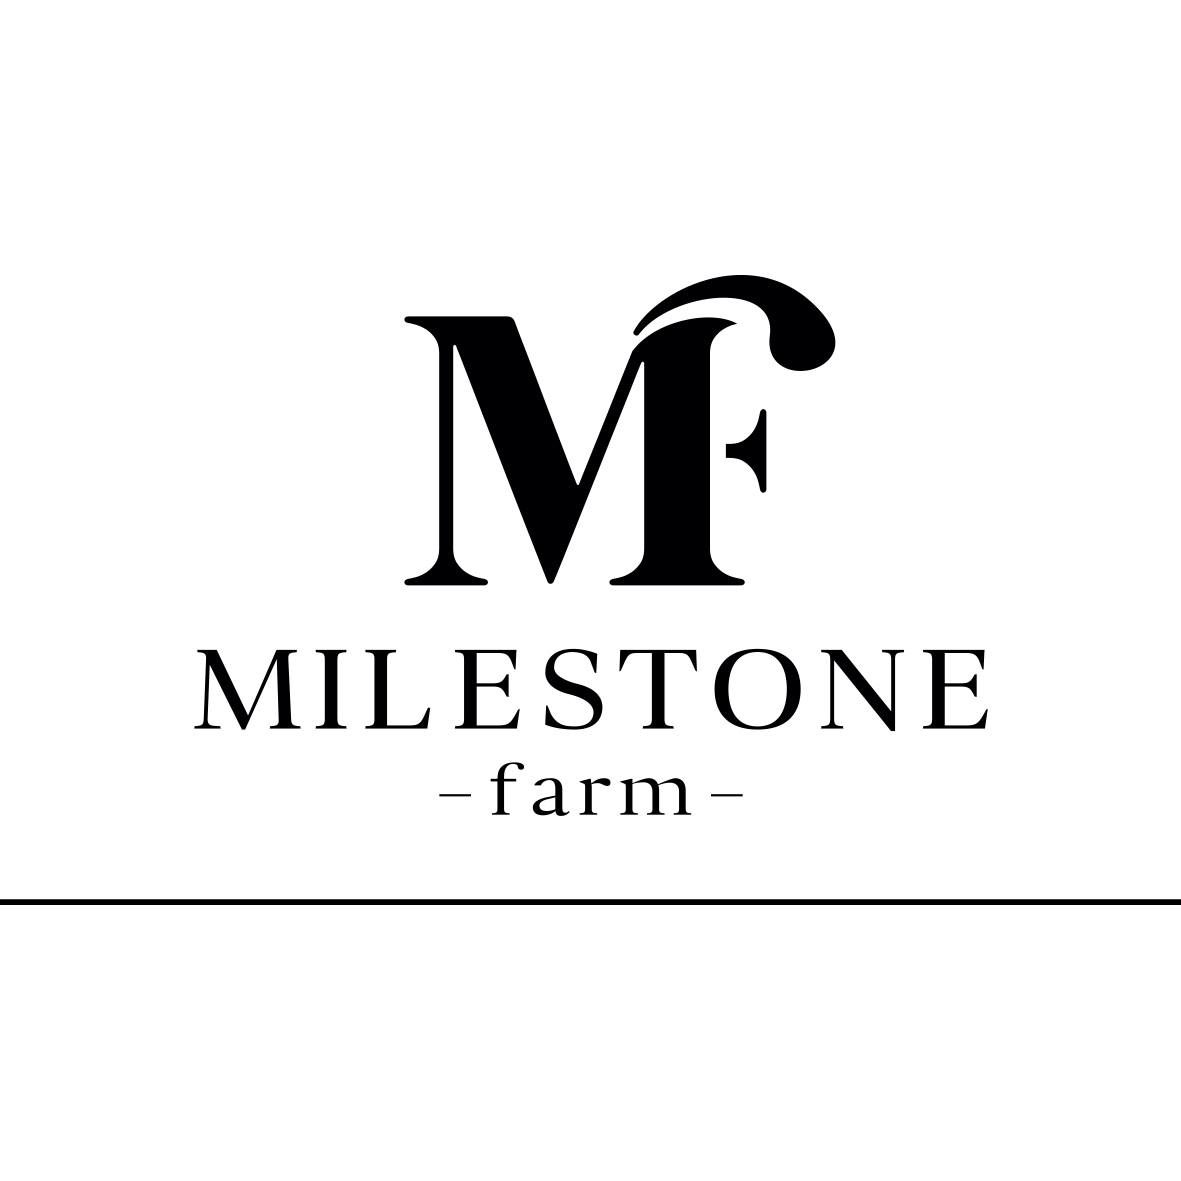 Milestone Farms